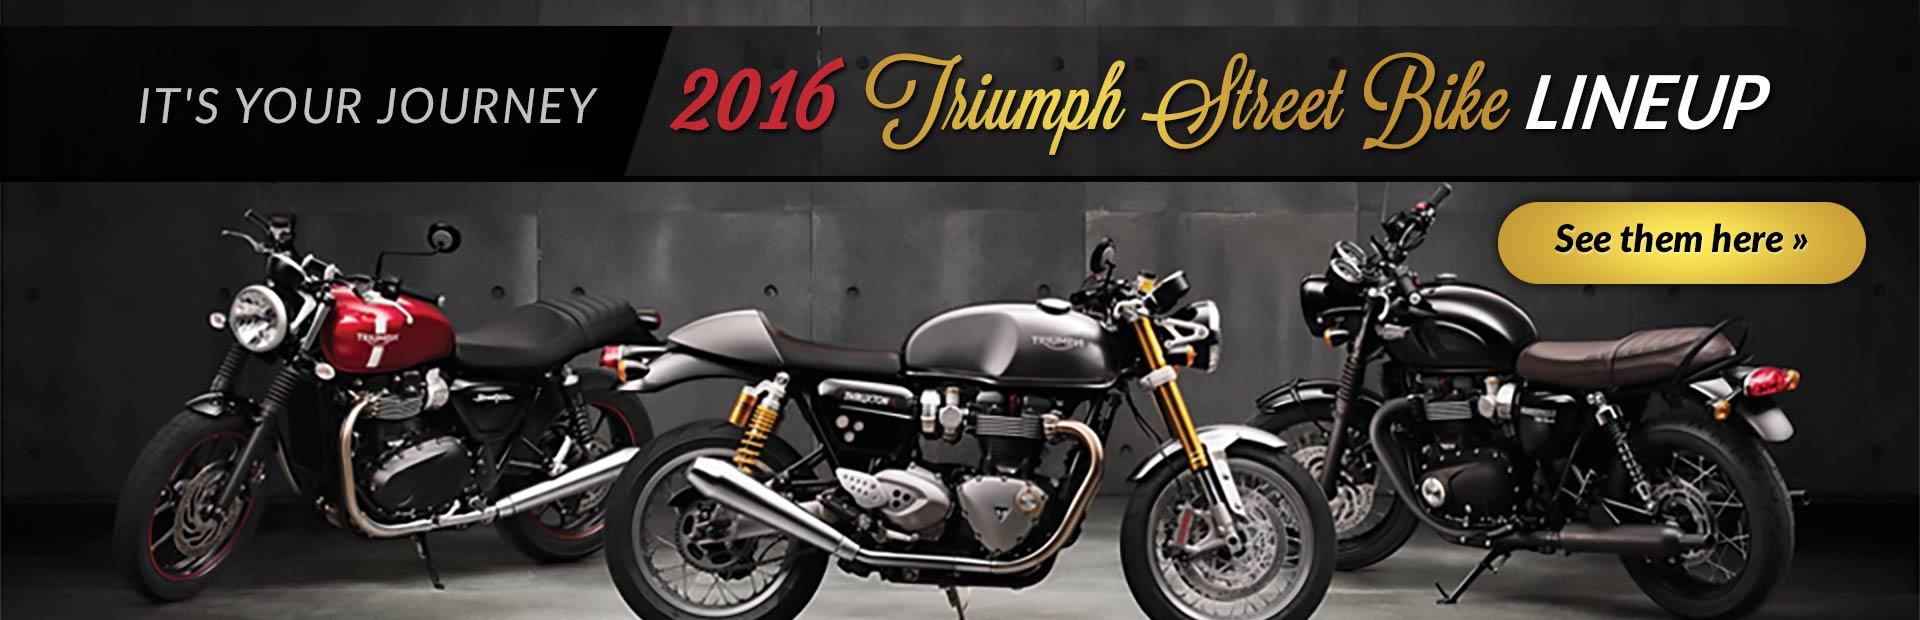 2016 Triumph Street Bike Lineup: Click here to view the models.